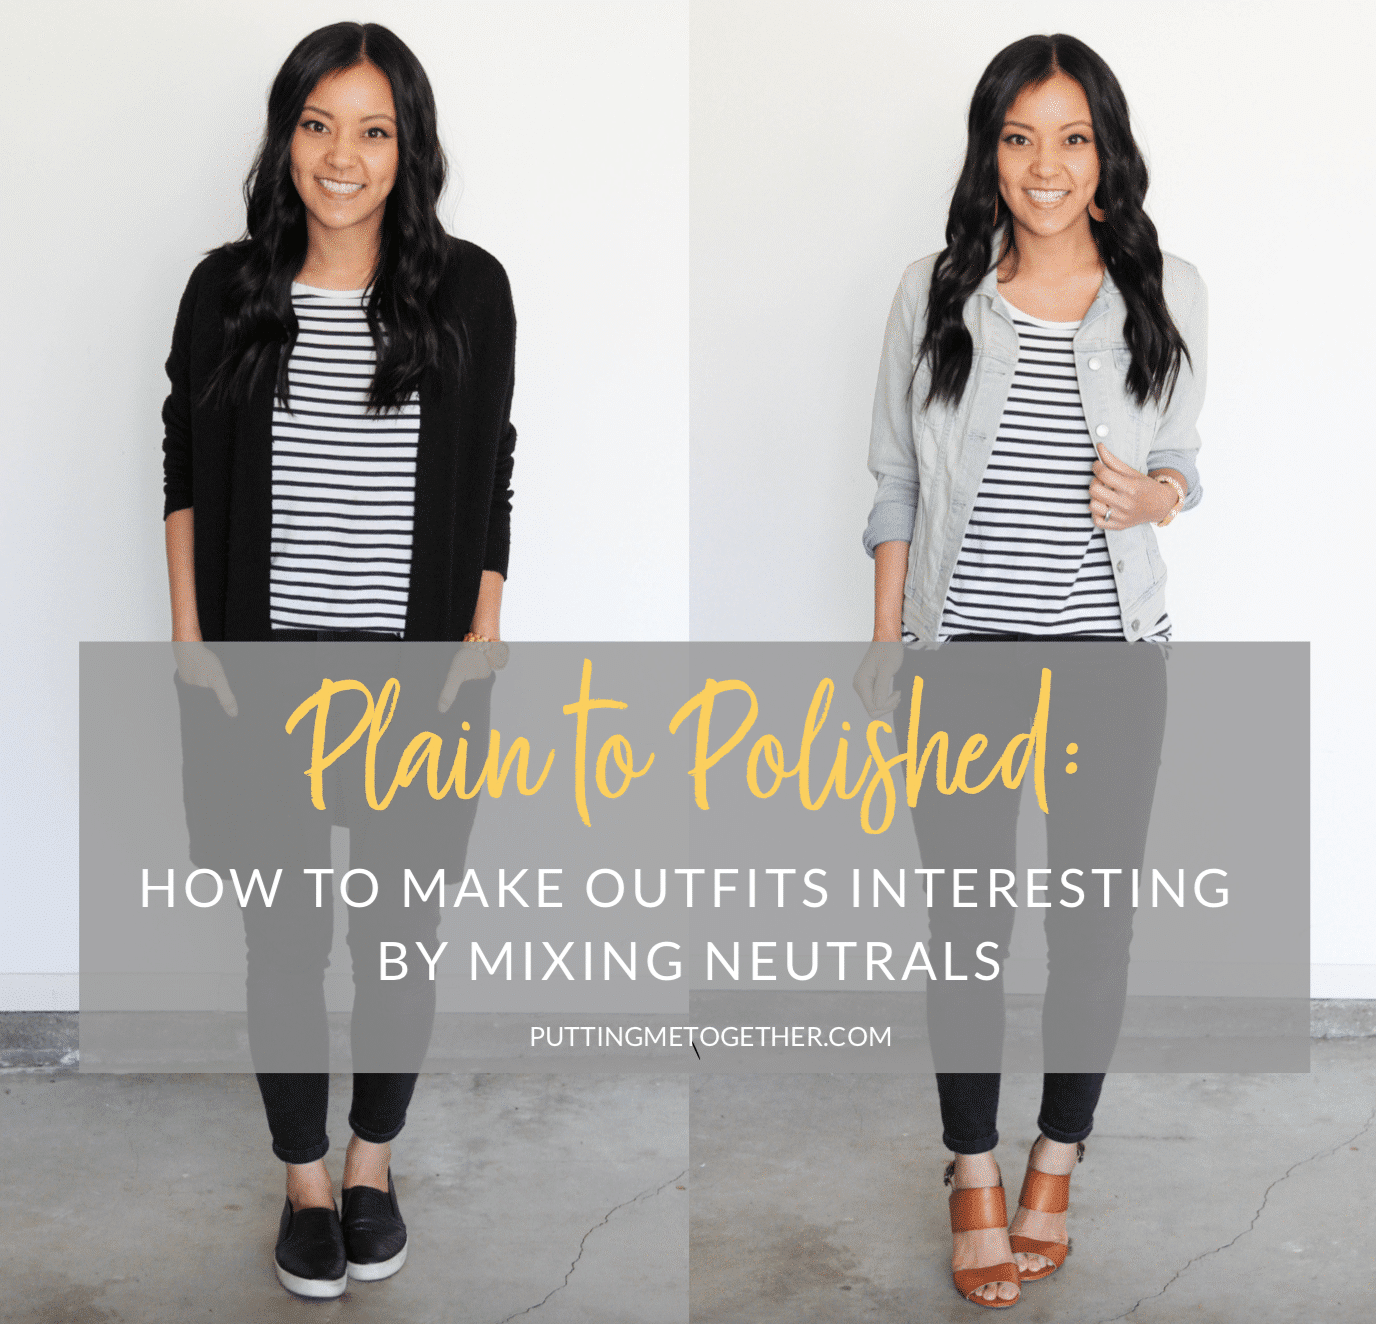 Plain To Polished: How to make outfits interesting by mixing neutrals